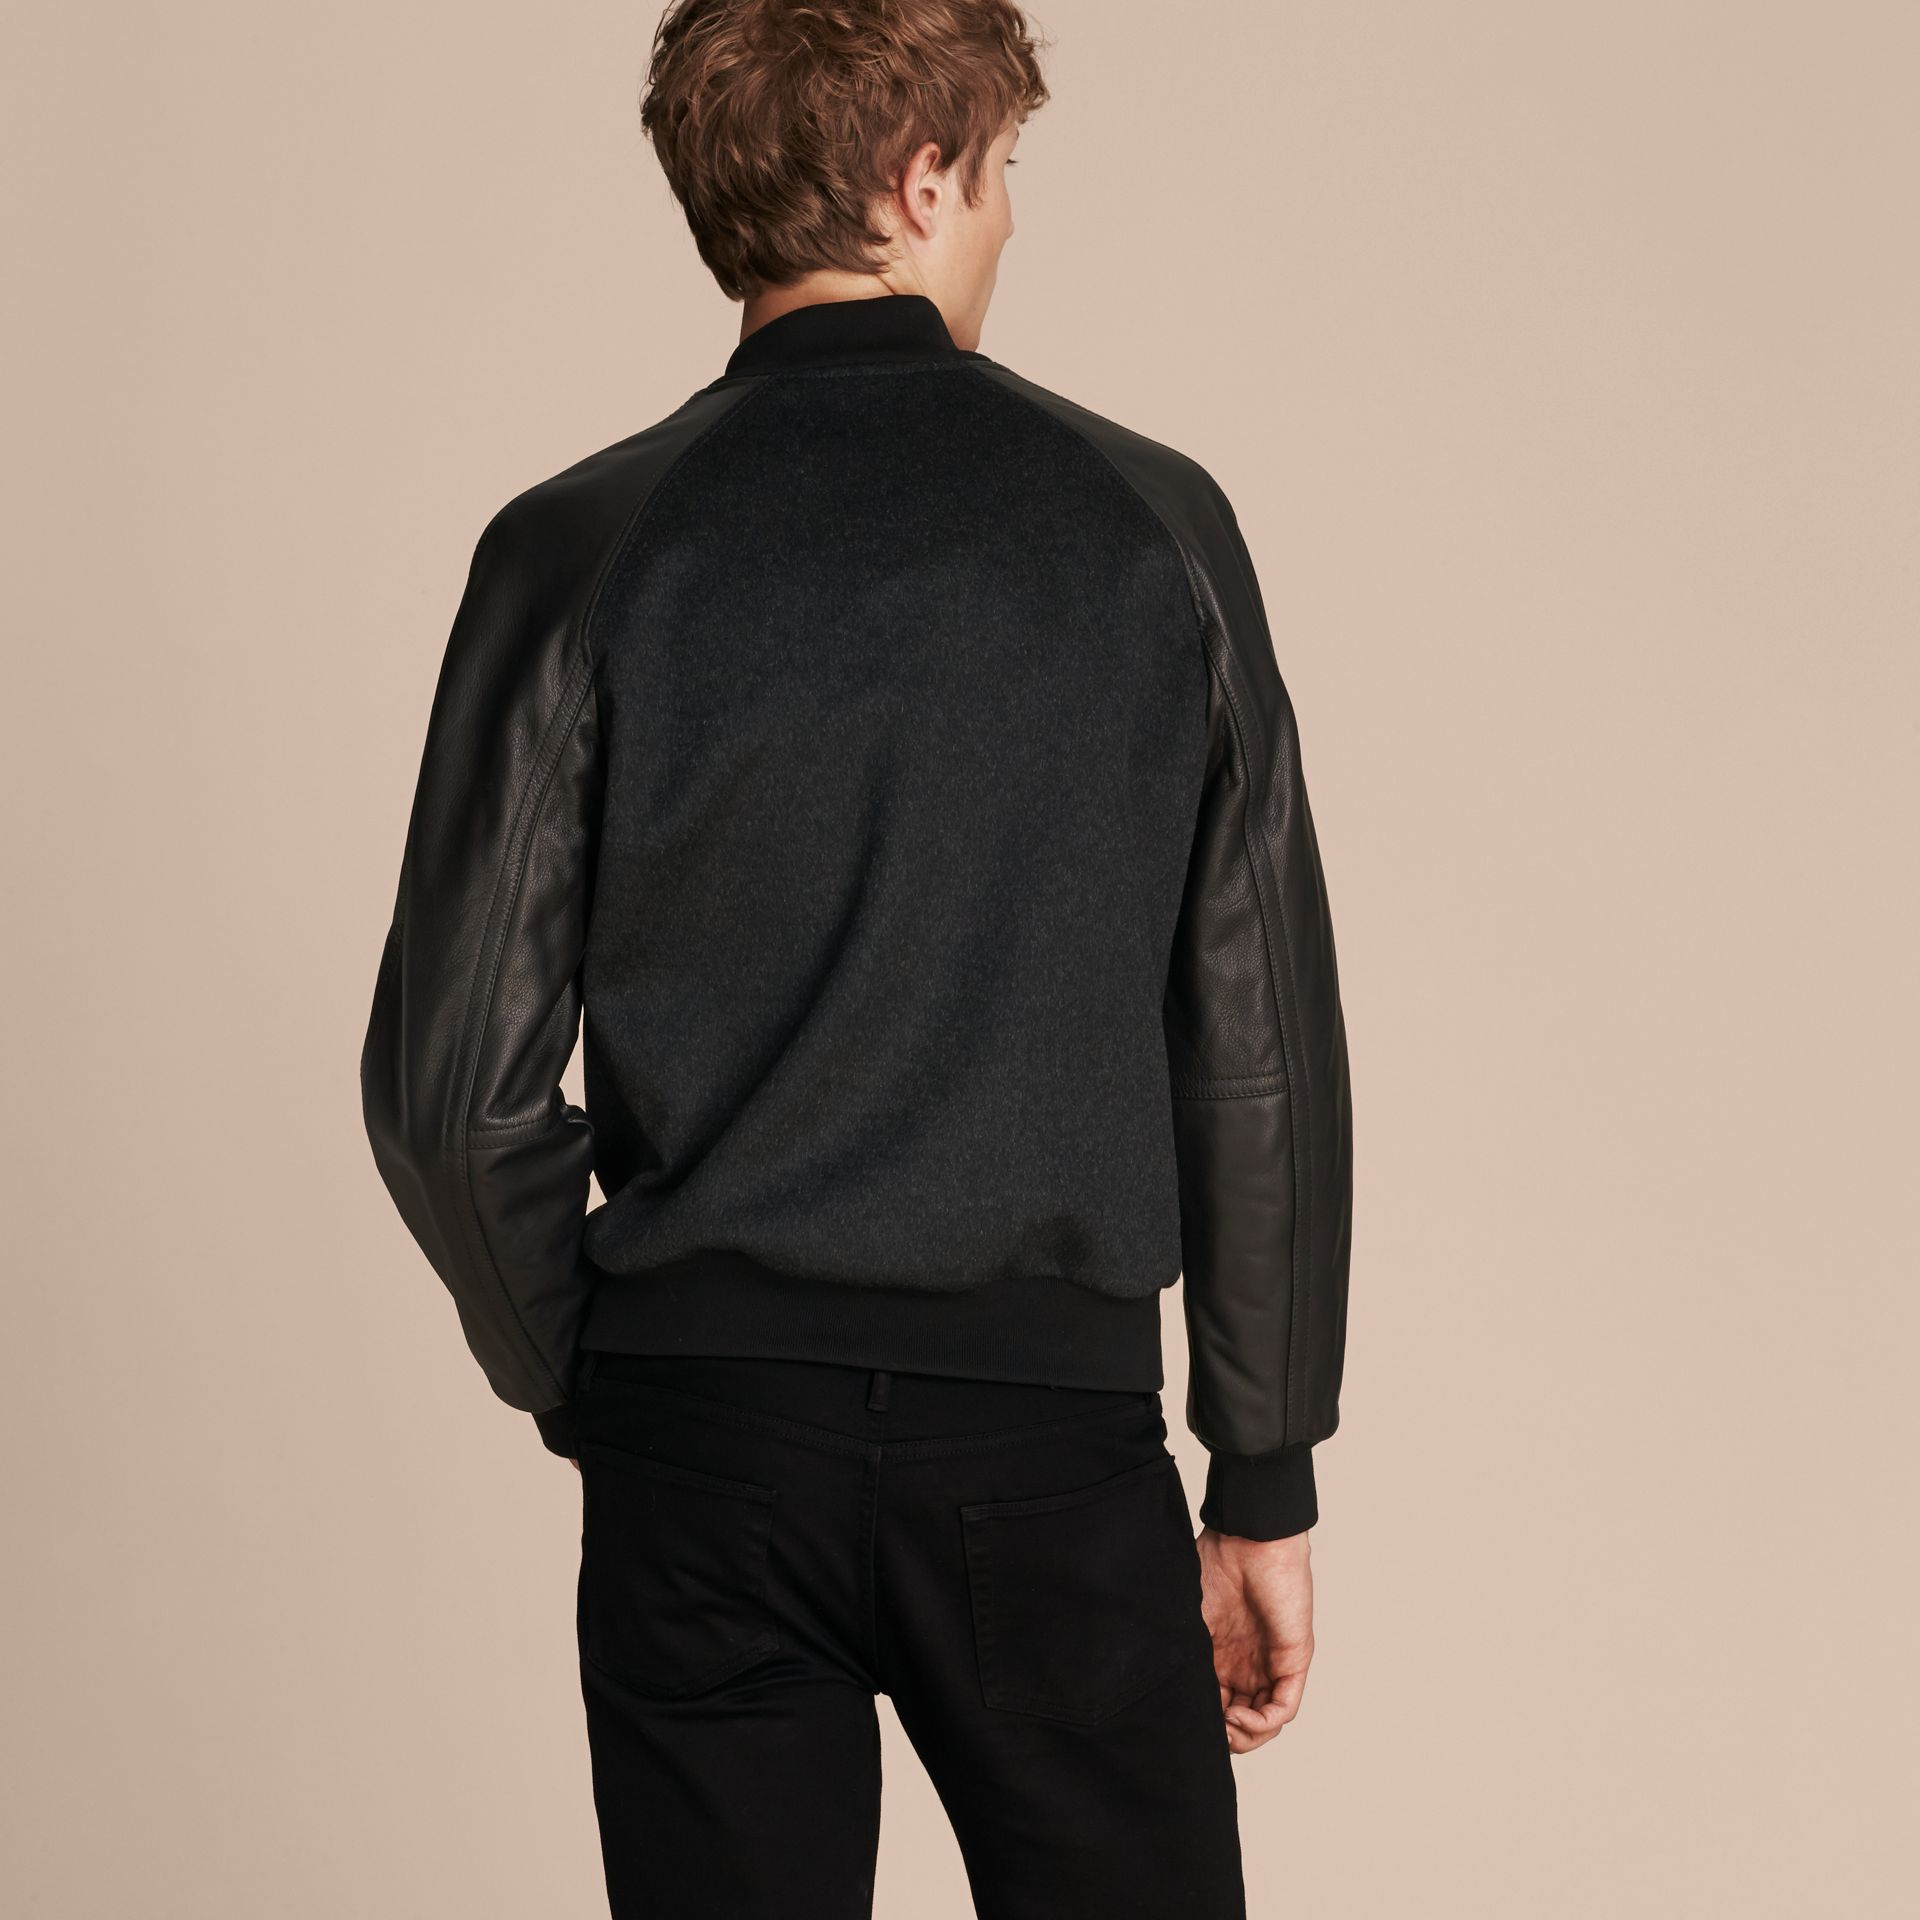 Dark grey melange Wool Cashmere Bomber Jacket with Leather Sleeves - gallery image 3